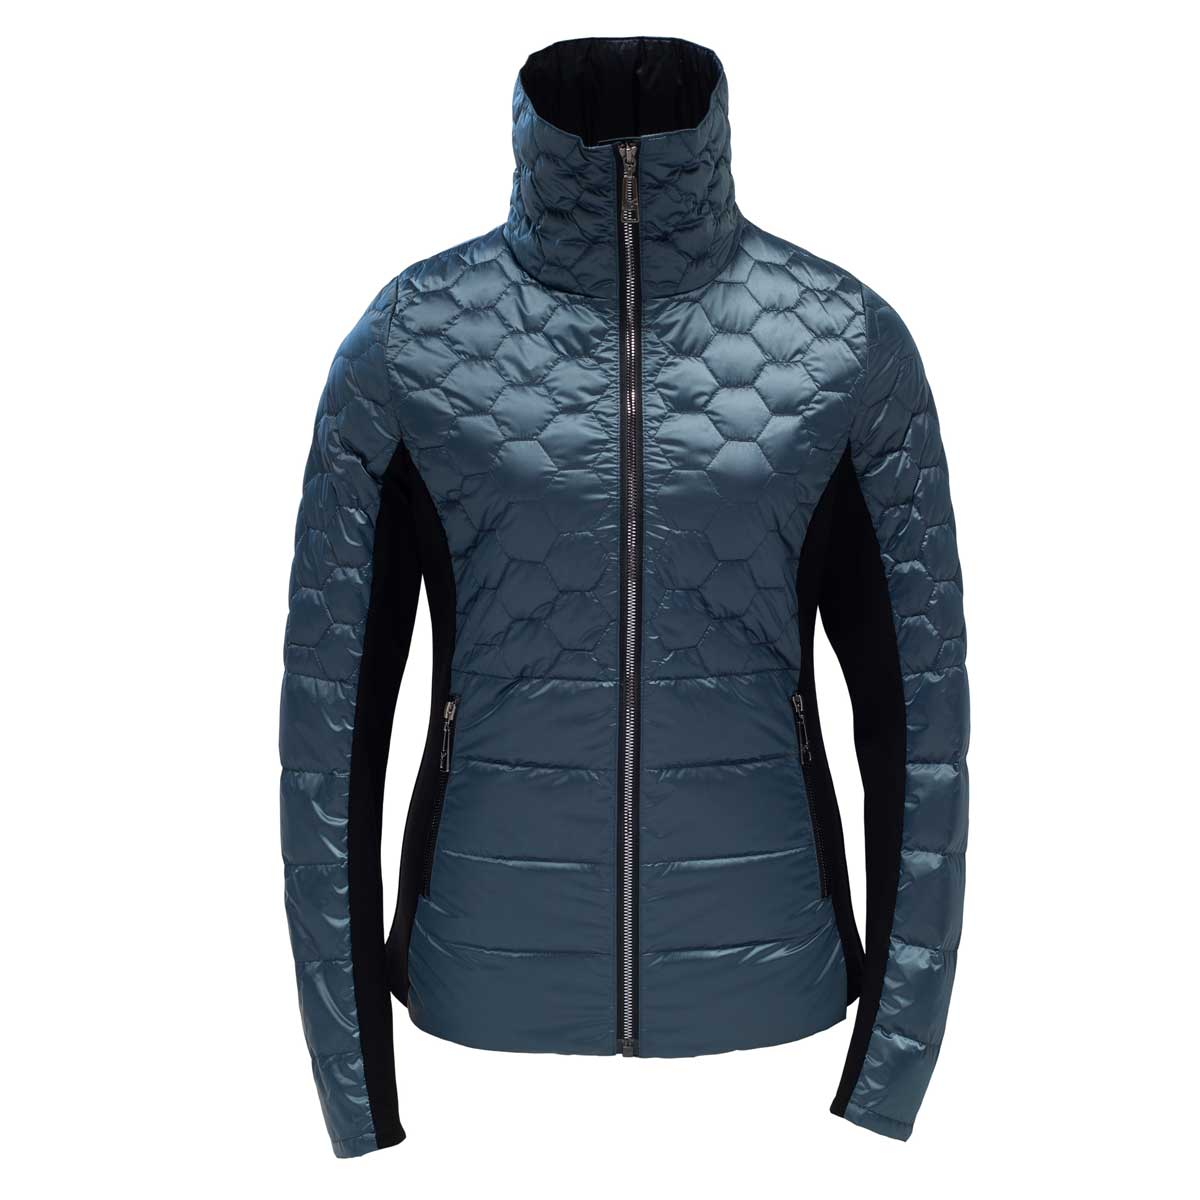 Skea Women's Riley Jacket in Bering Sea and Black